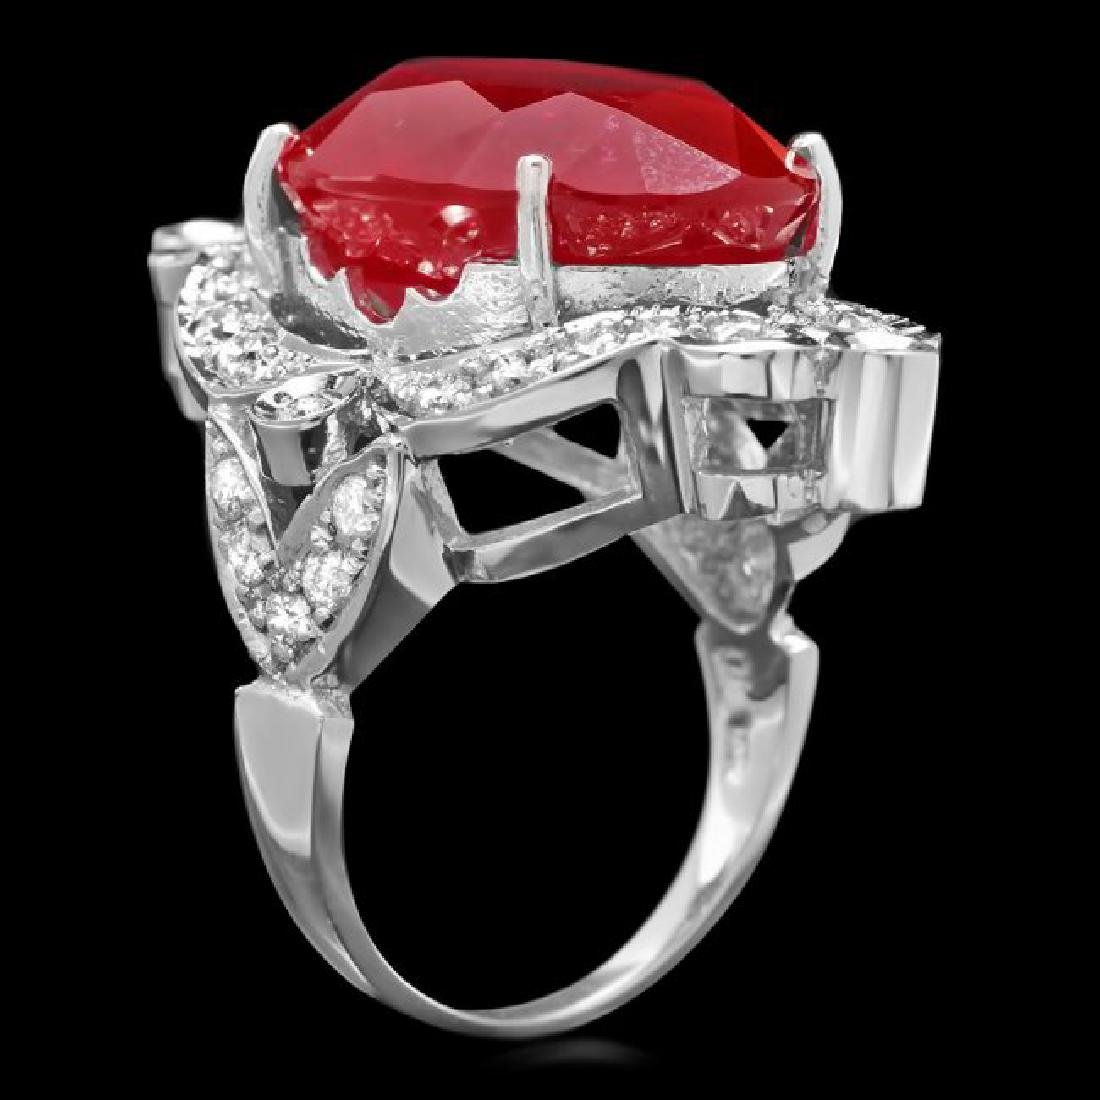 14k White Gold 22.00ct Ruby 1.30ct Diamond Ring - 2